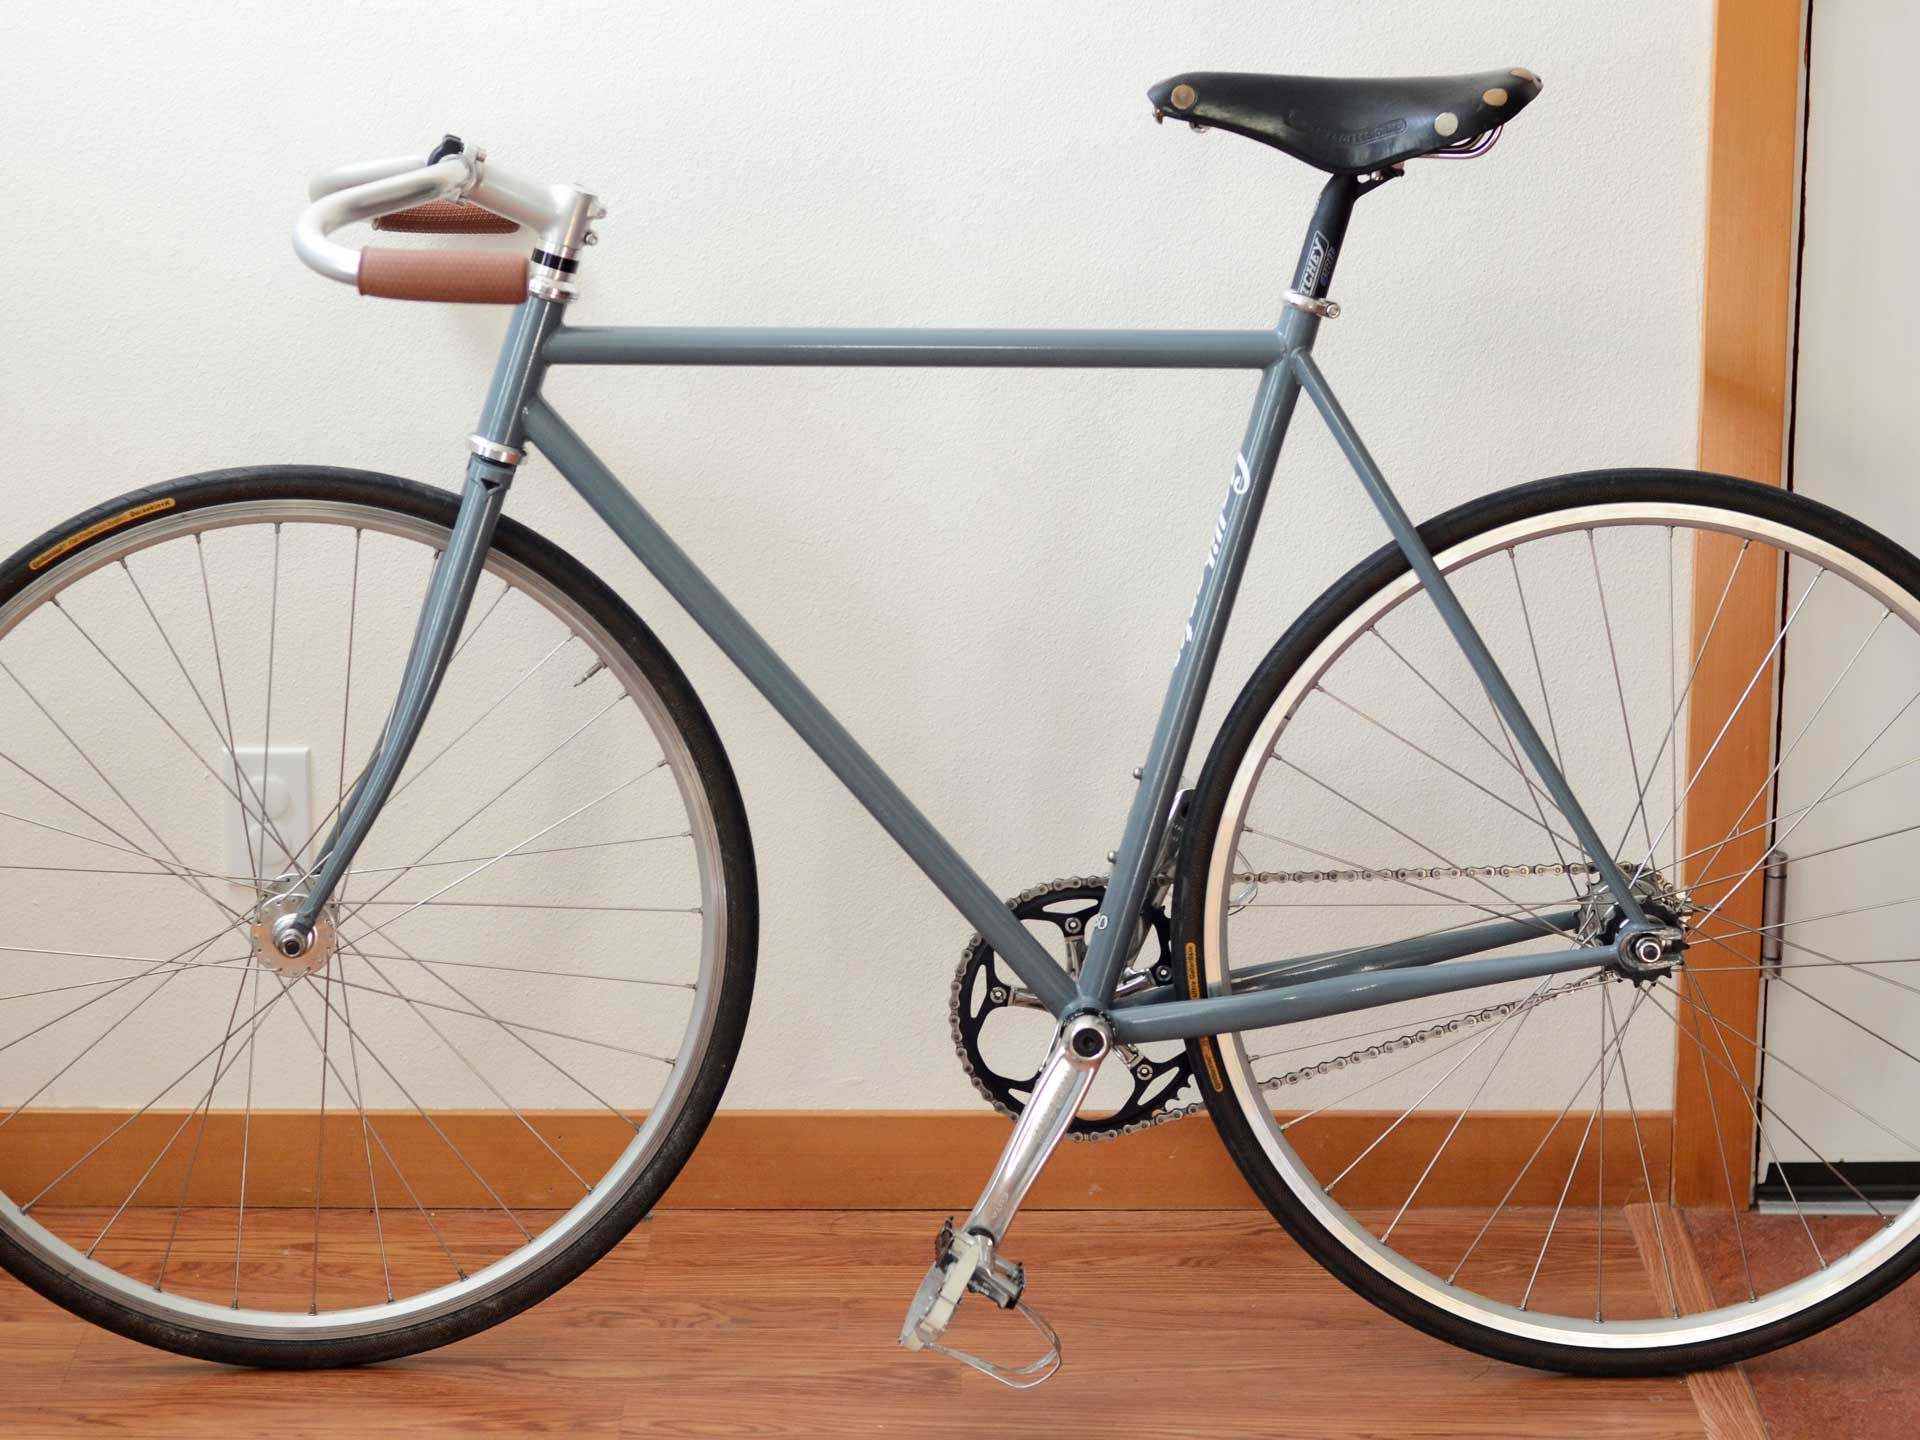 My 2004 Surly Steamroller went to a new home, along with my Brooks Professional saddle, via eBay.